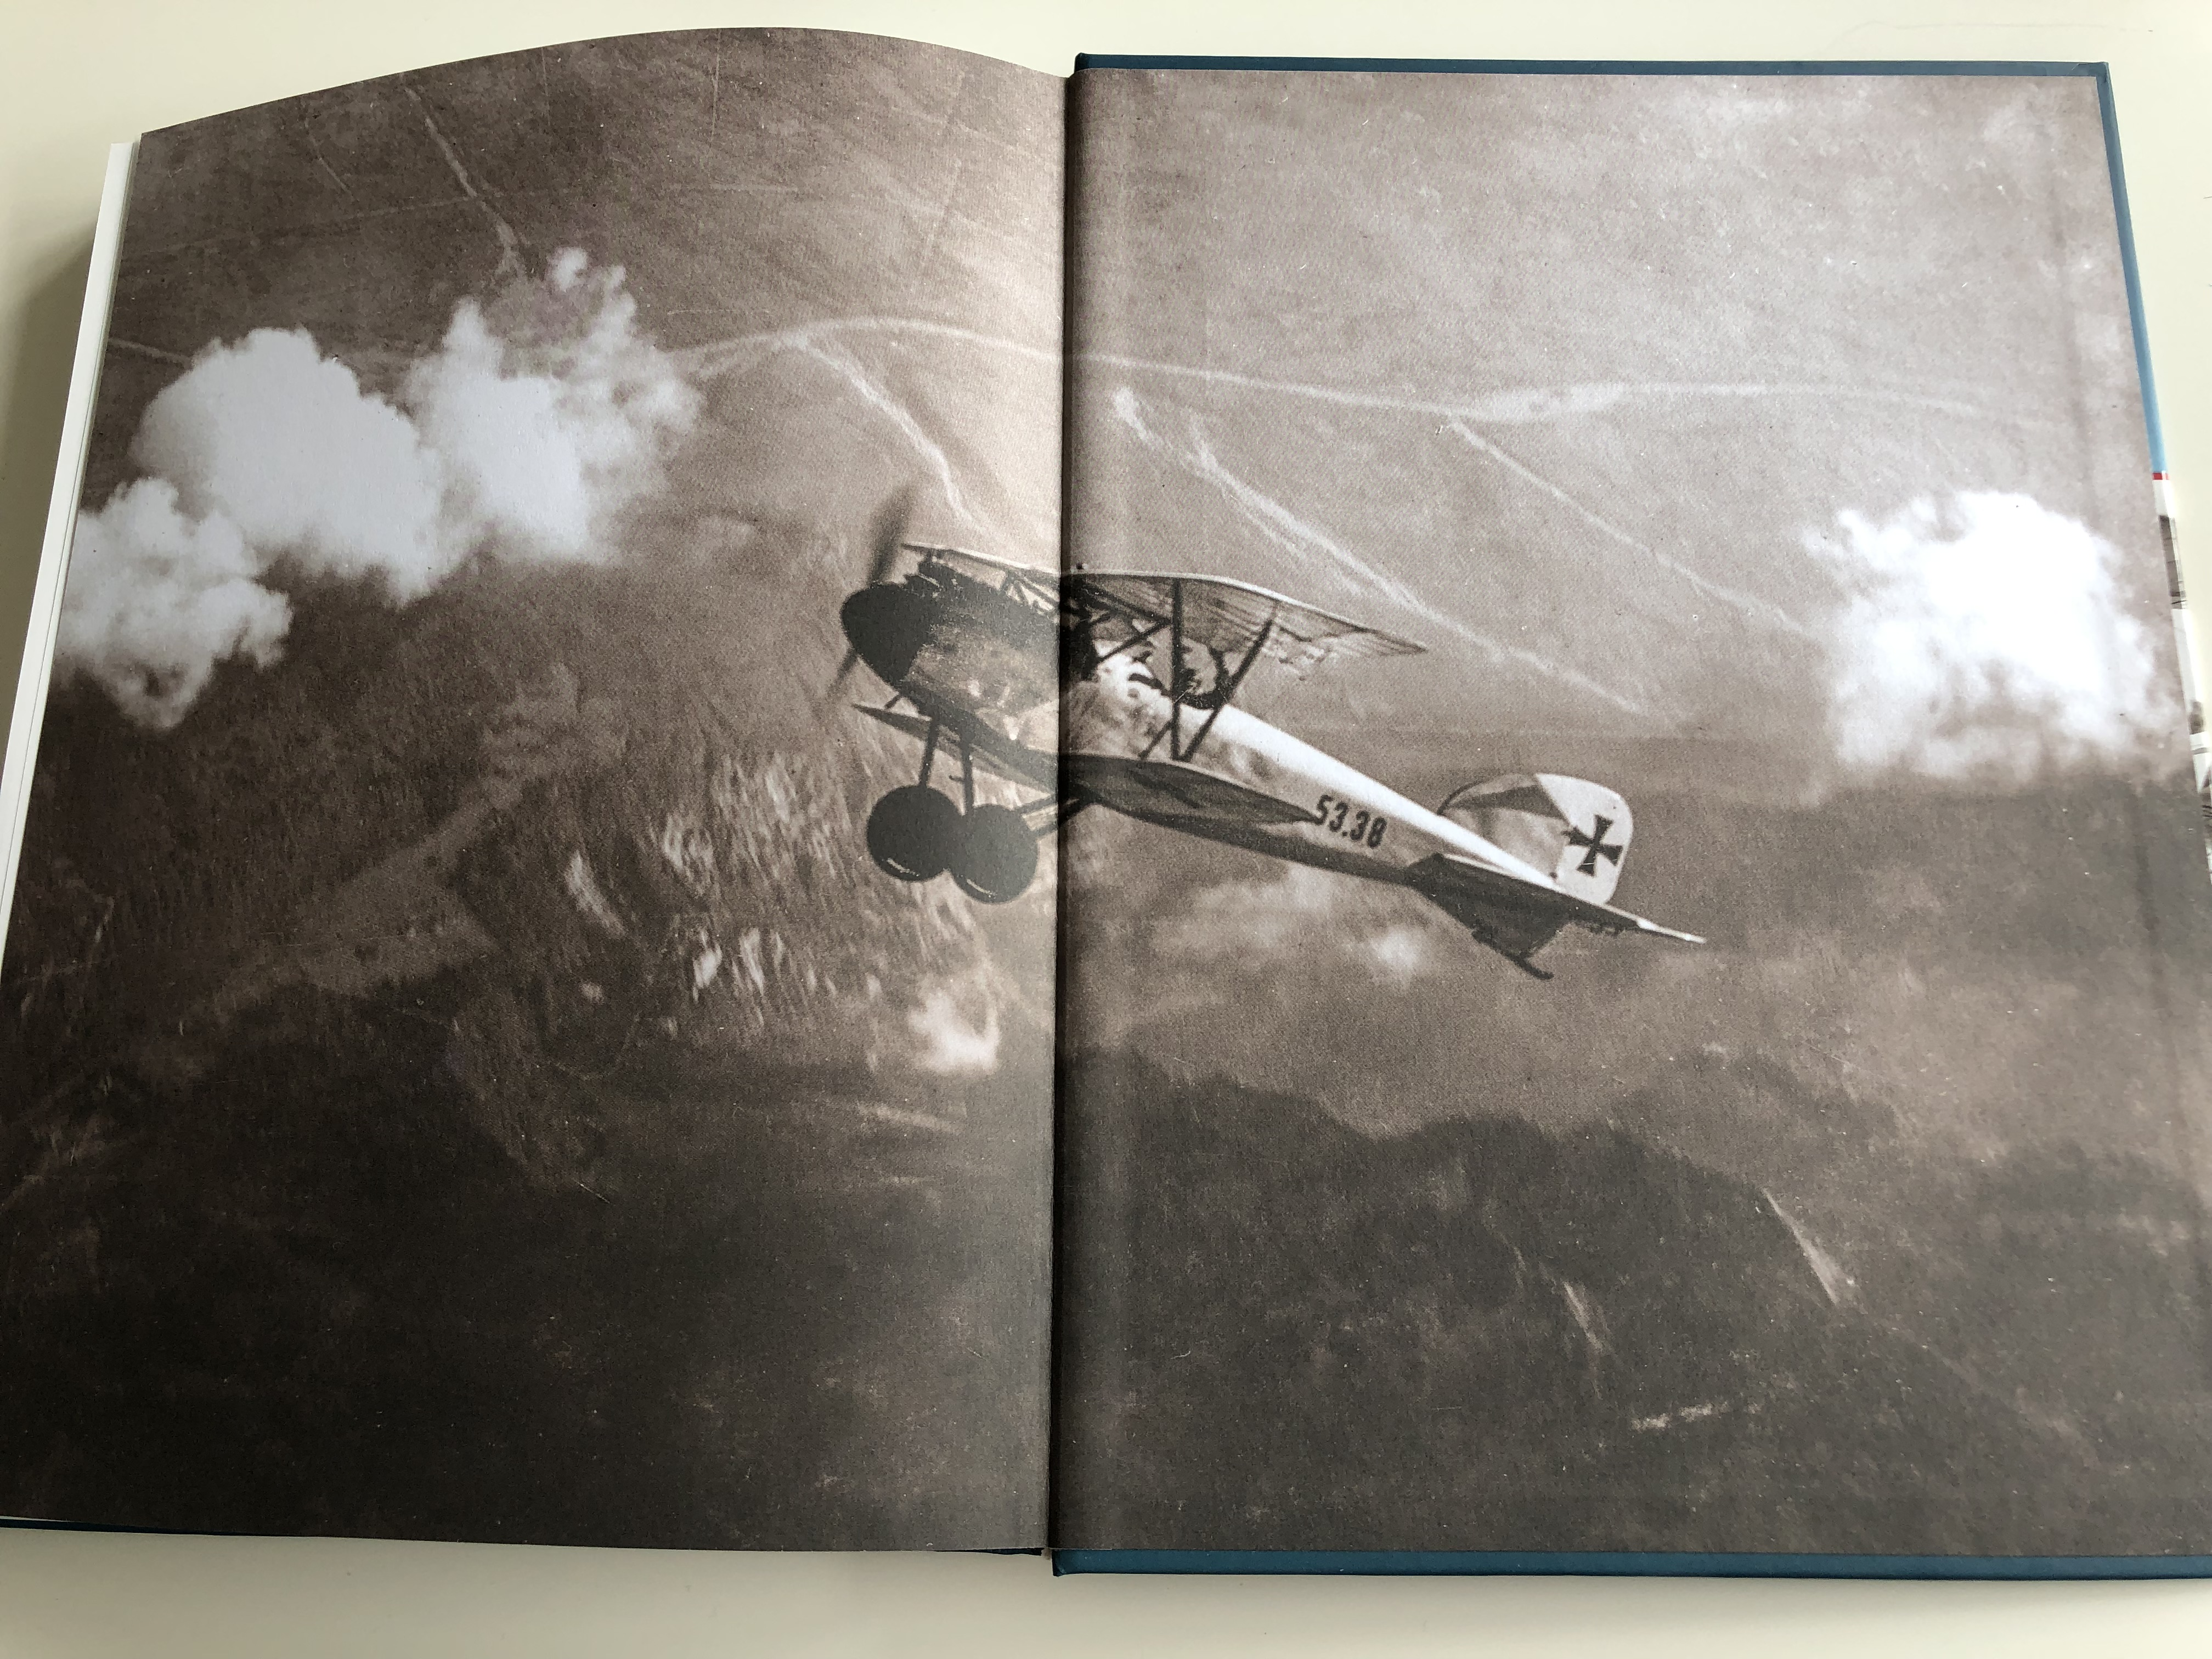 flying-aces-1914-1918-the-most-successful-aviators-of-the-austro-hungarian-monarchy-and-their-equipment-hardcover-2016-hm-zr-nyi-kiad-22-.jpg